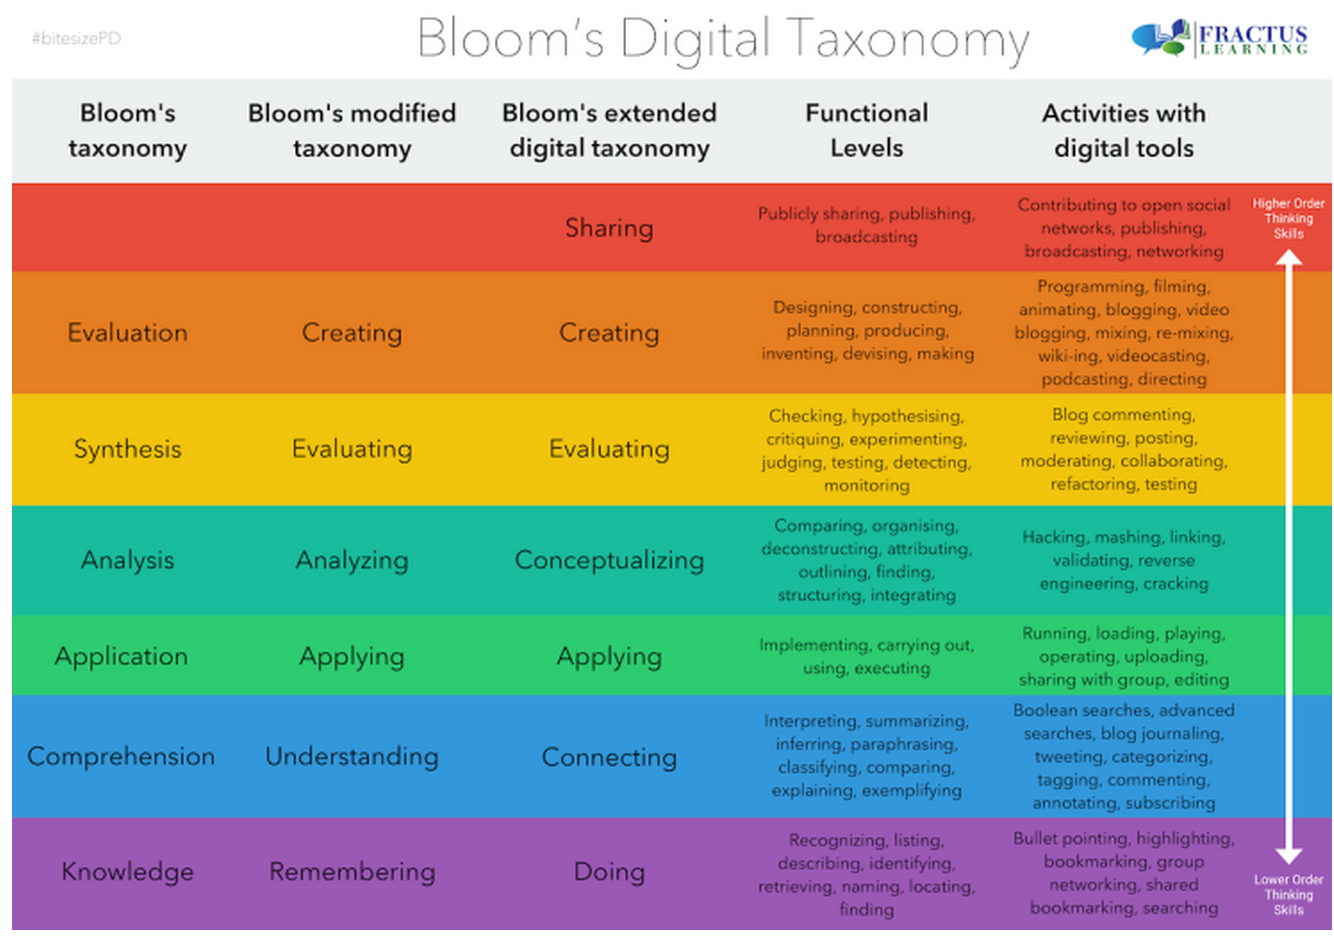 new bloom 39 s taxonomy poster for teachers educational technology and mobile learning. Black Bedroom Furniture Sets. Home Design Ideas